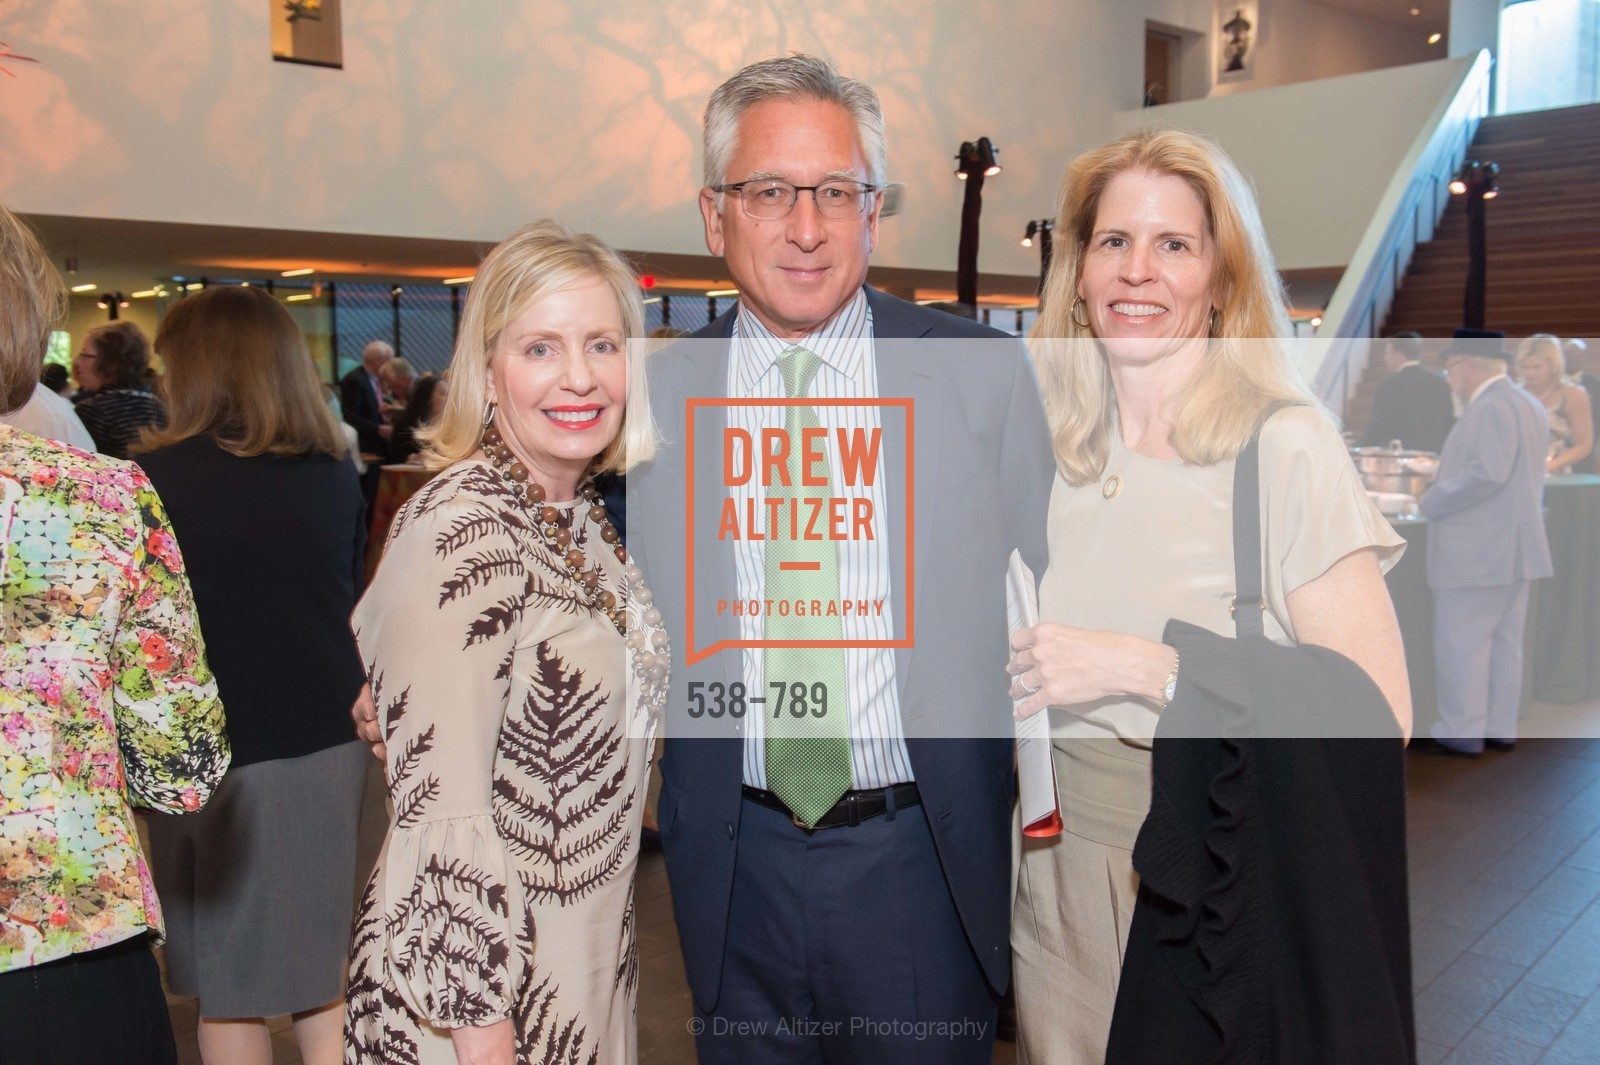 Allison Huegel, Steve Mitsuoka, Patricia Mitsuoka, ALONZO KING LINE'S Ballet Spring Gala 2015, US, April 12th, 2015,Drew Altizer, Drew Altizer Photography, full-service agency, private events, San Francisco photographer, photographer california